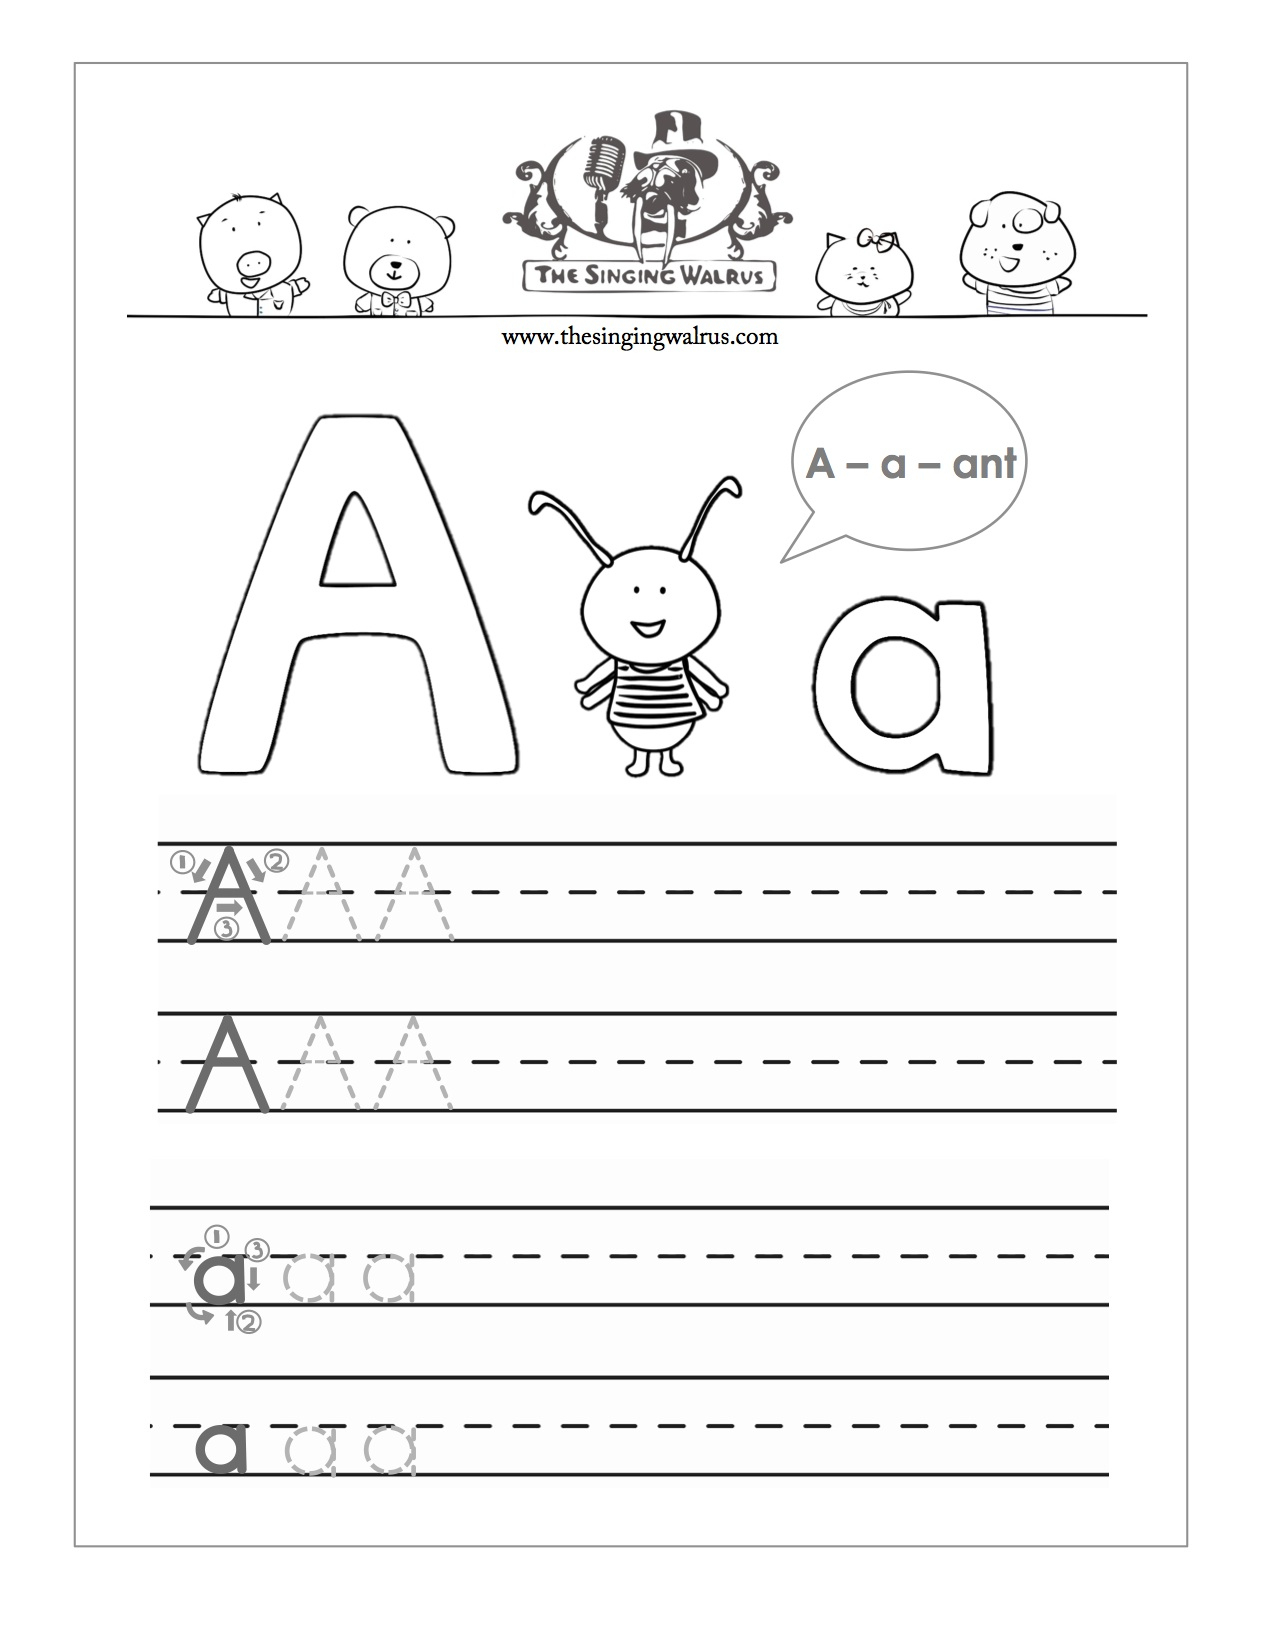 Letters Practice Sheets - Koran.sticken.co | Free Printable Letter Writing Worksheets